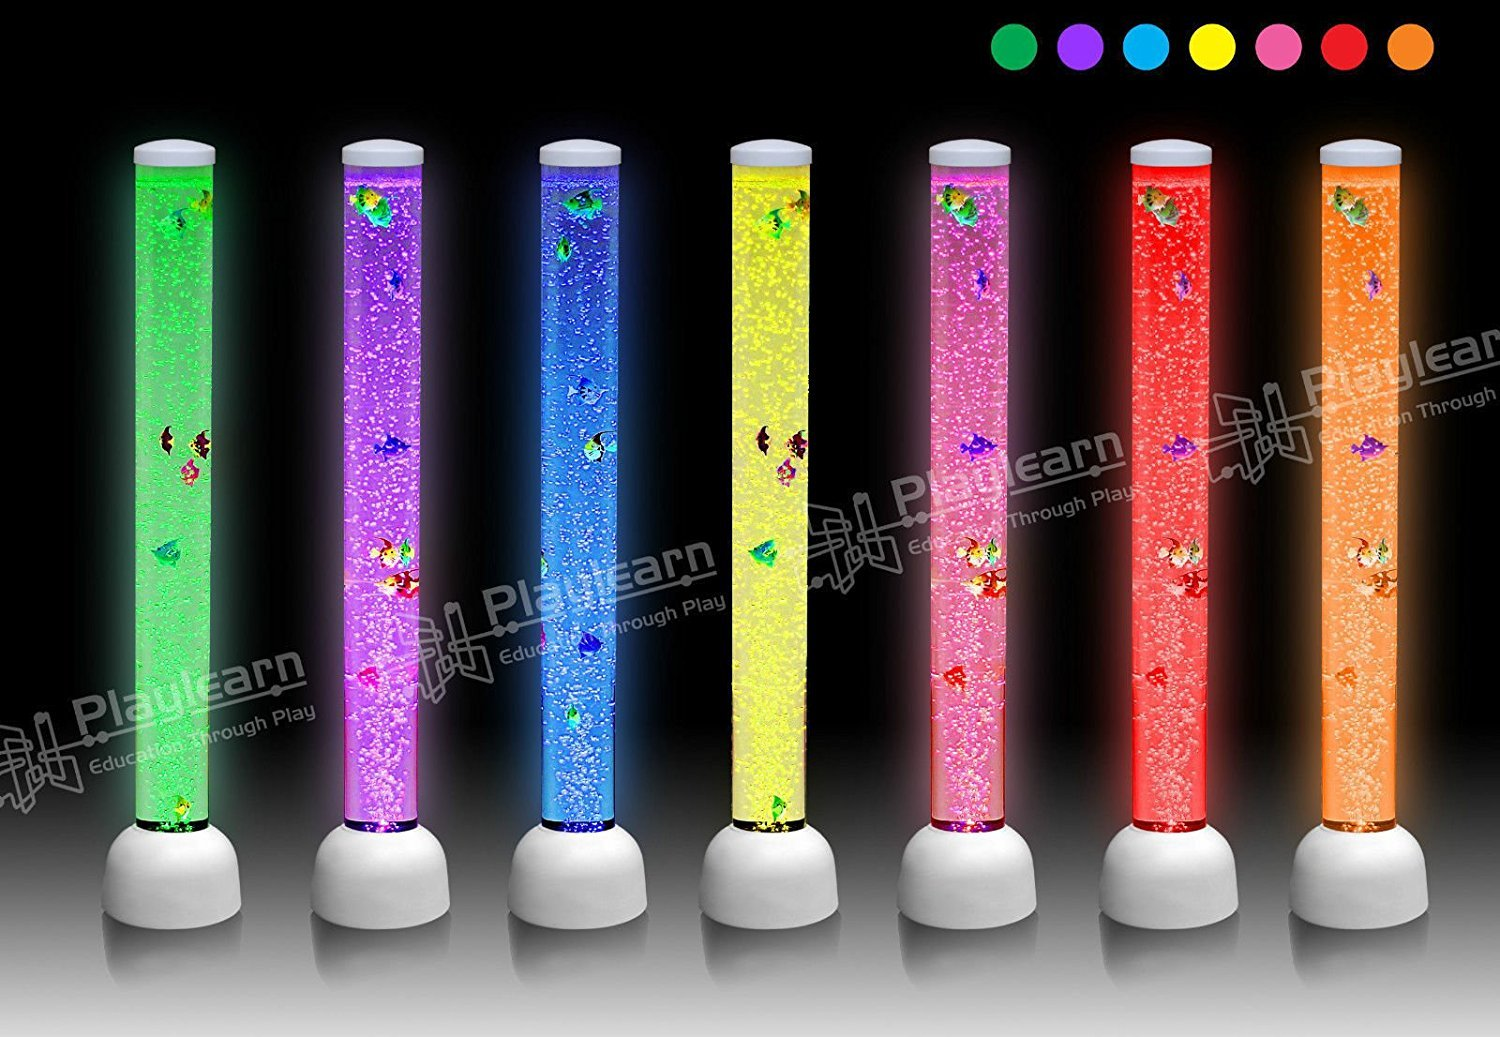 Sensory LED Bubble Tube - 3 Foot ''Tank'' With Fake Fish - Floor Lamp with 7 Changing Light Colors - White Stimulating Home and Office Décor - by Playlearn